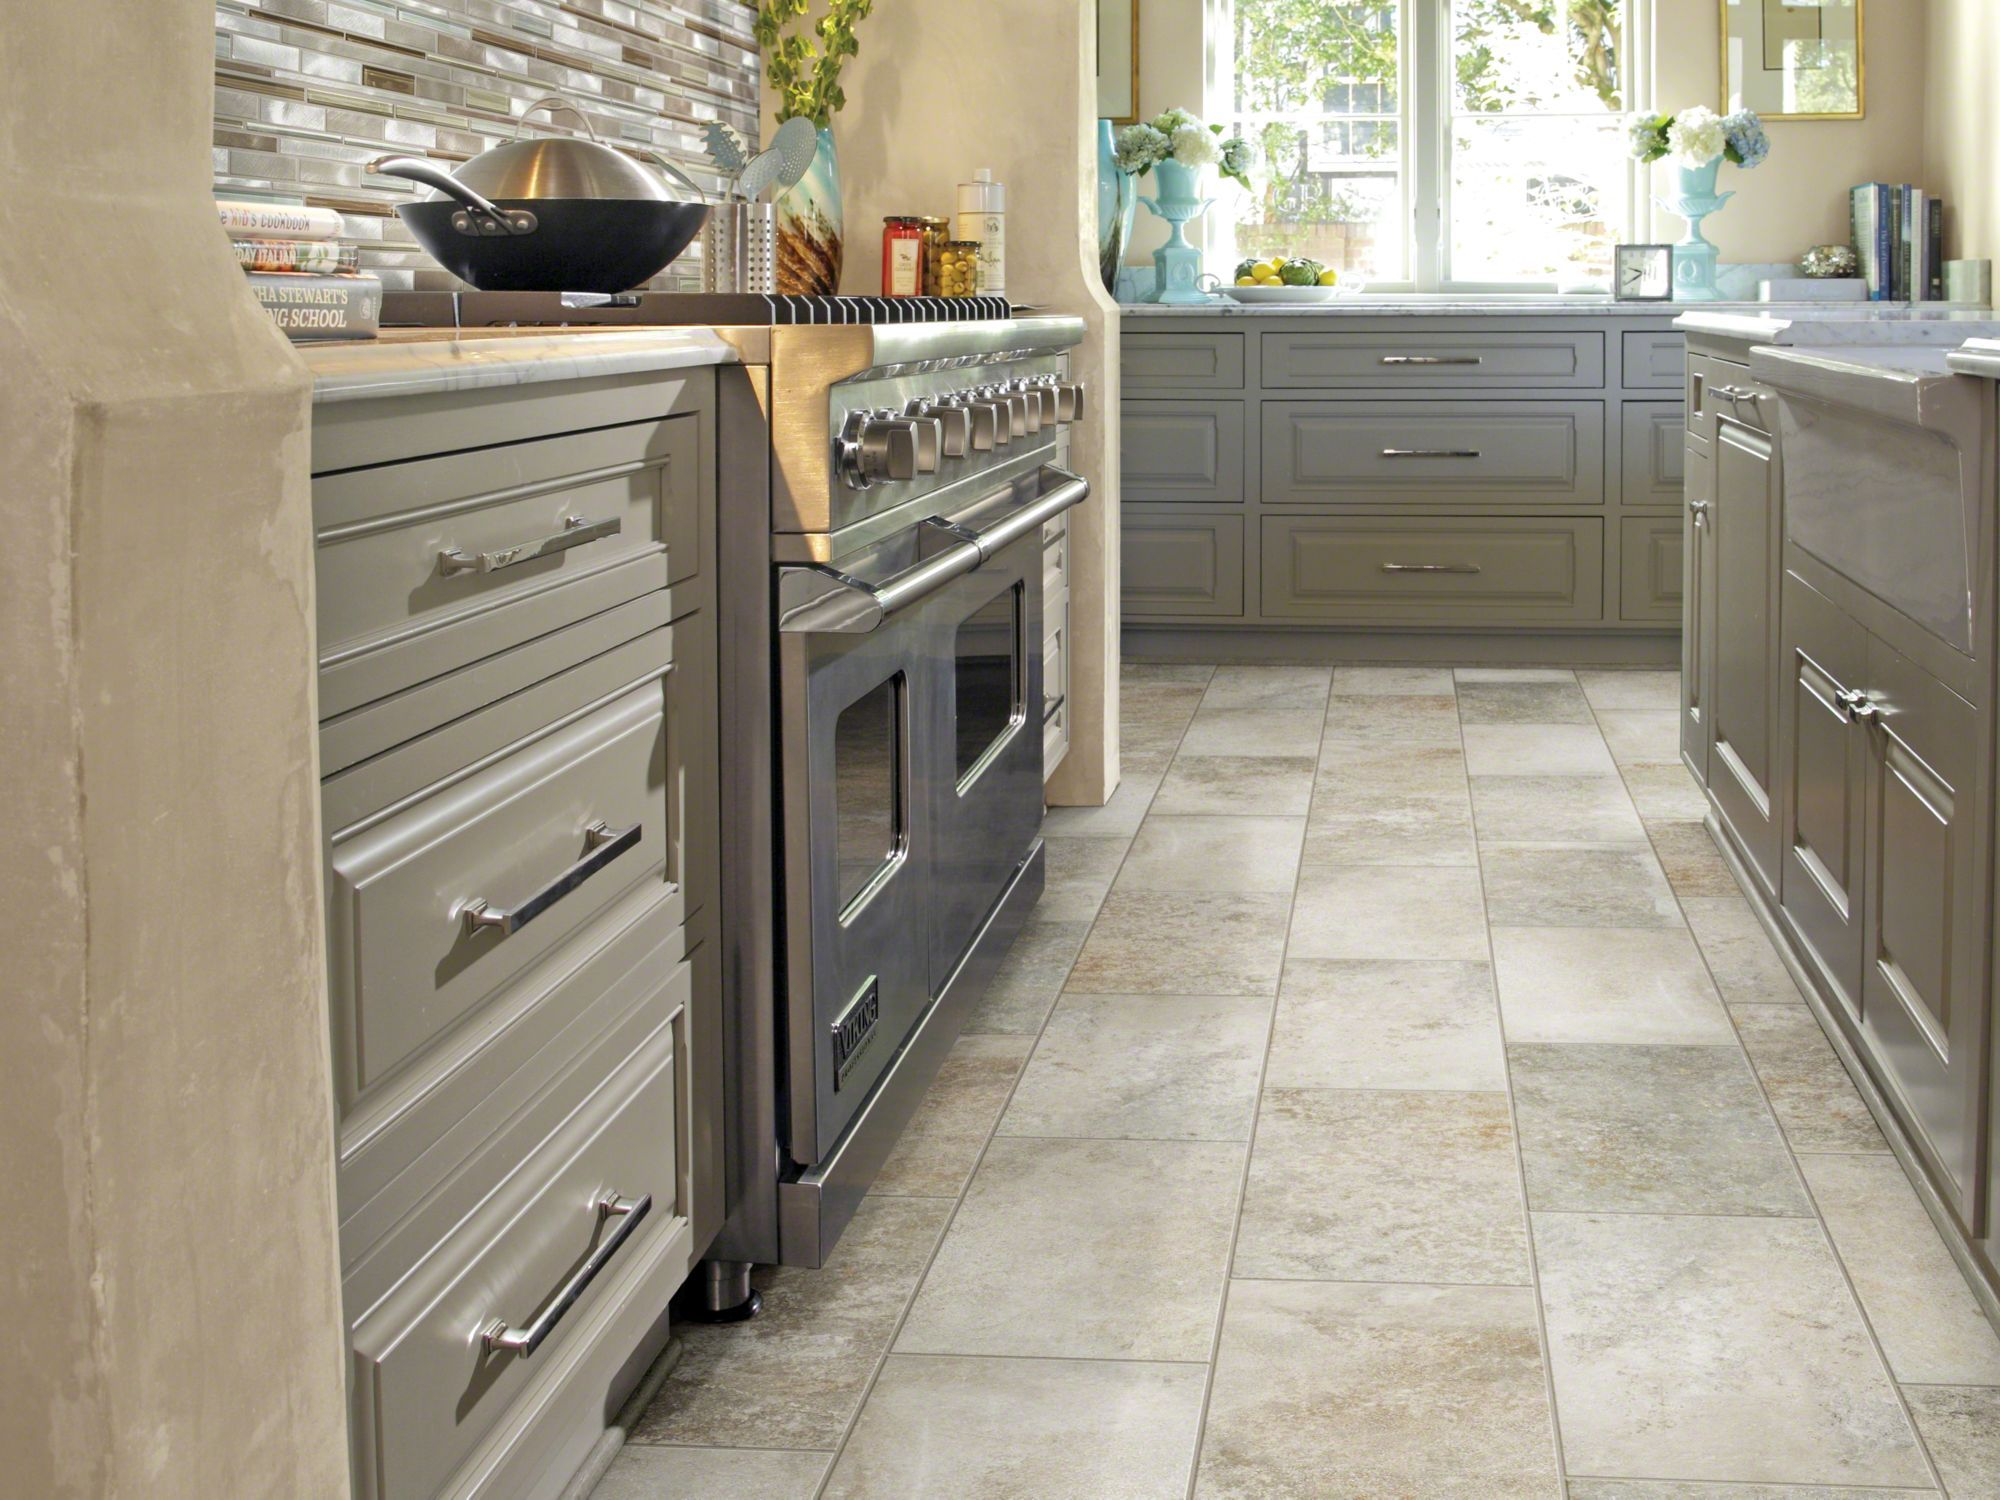 Tile flooring grout line width grout stone and tile flooring tile flooring grout line width dailygadgetfo Gallery